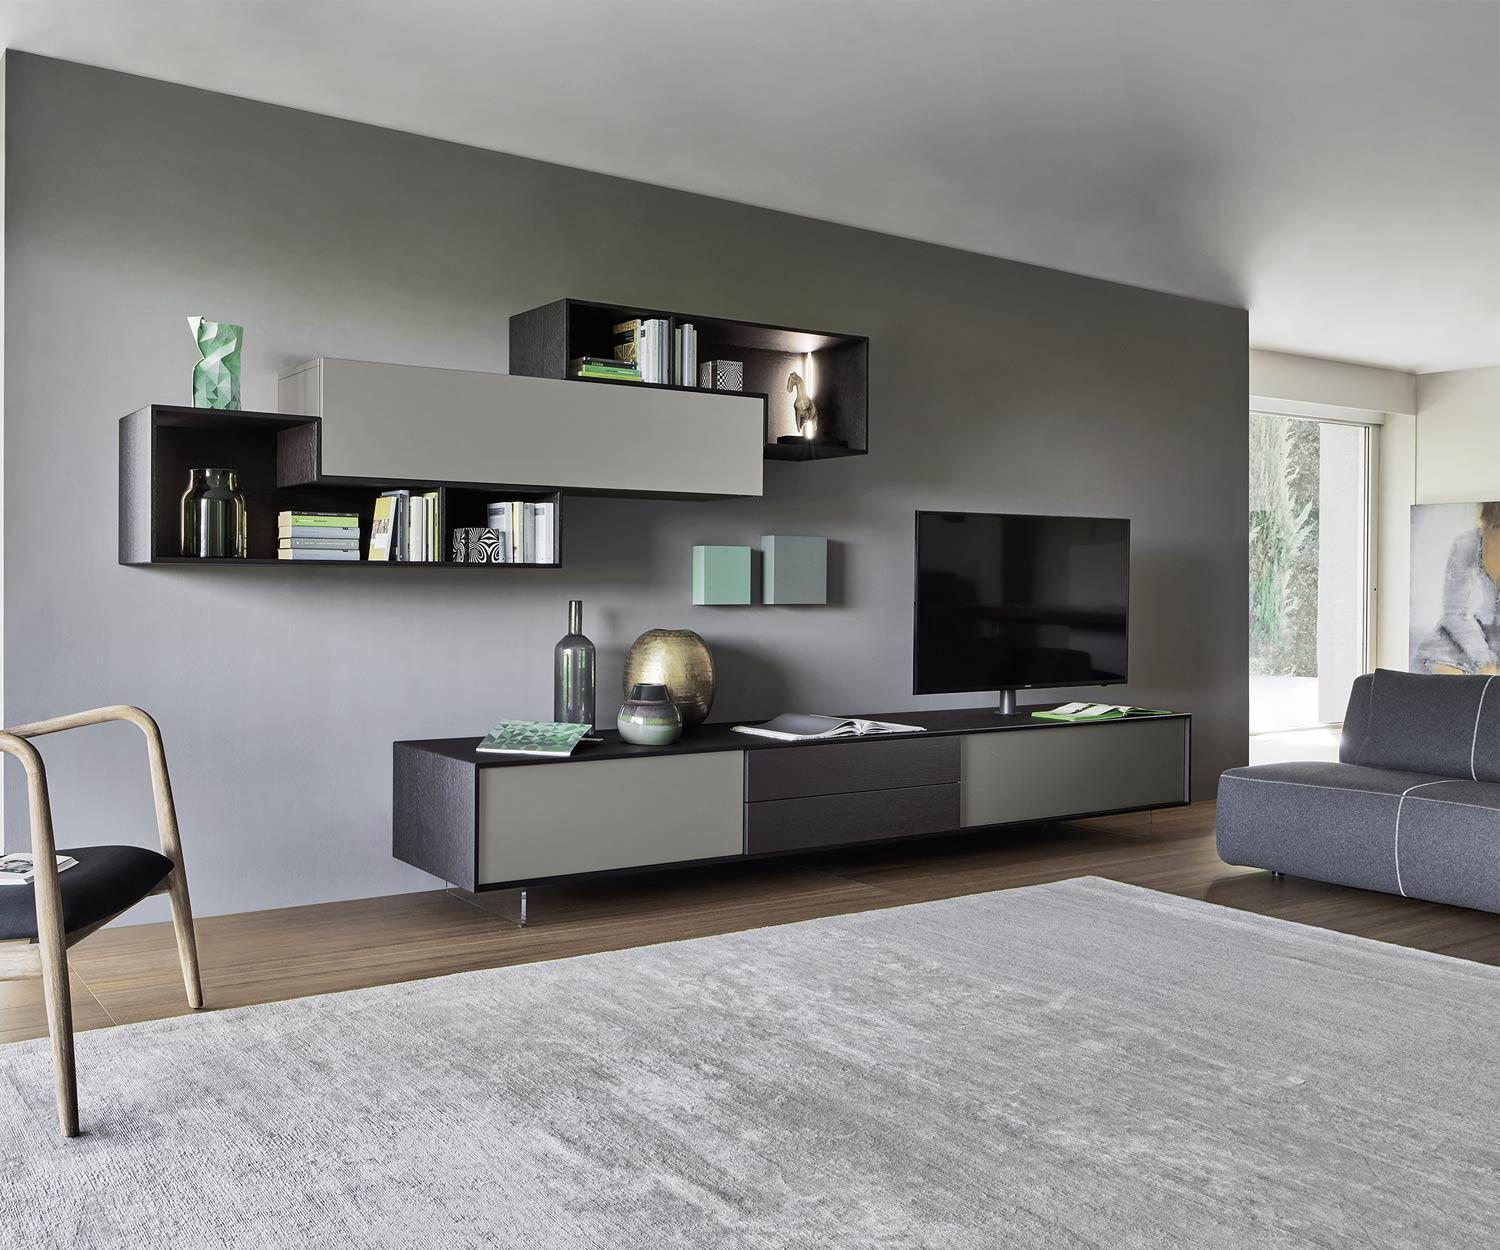 top 10 der sch nsten wohnw nde f rs wohnzimmer. Black Bedroom Furniture Sets. Home Design Ideas